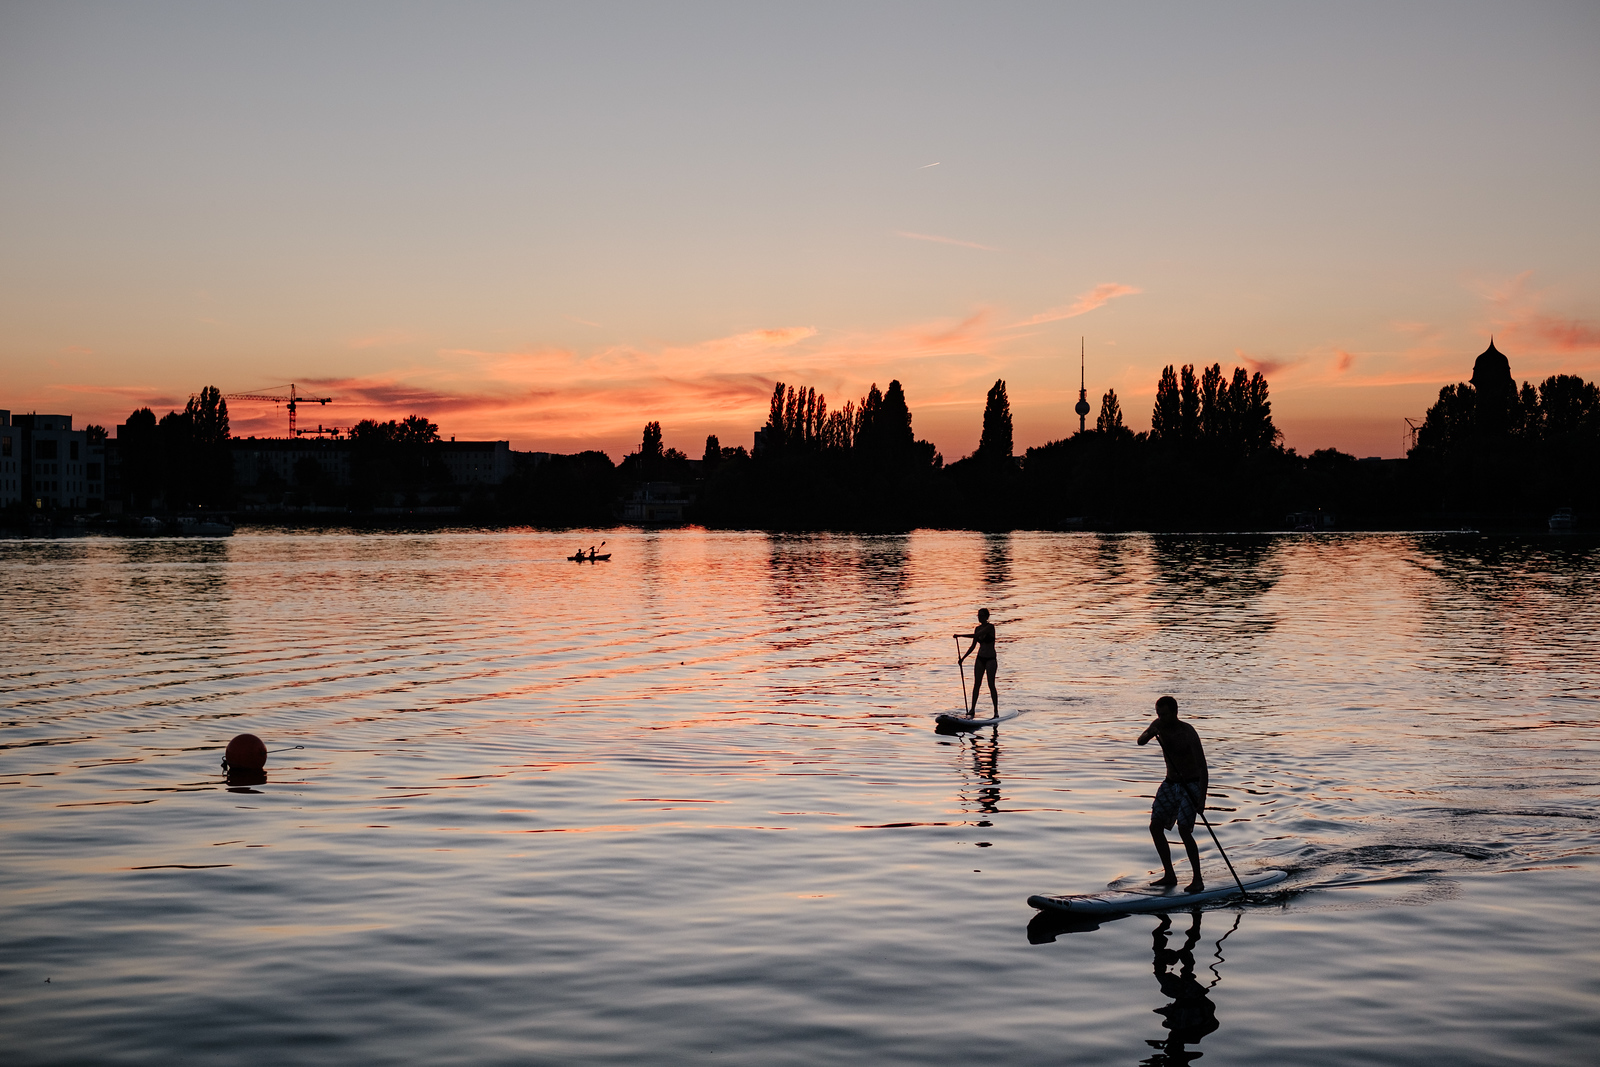 Paddle boarding on a lake in Berlin